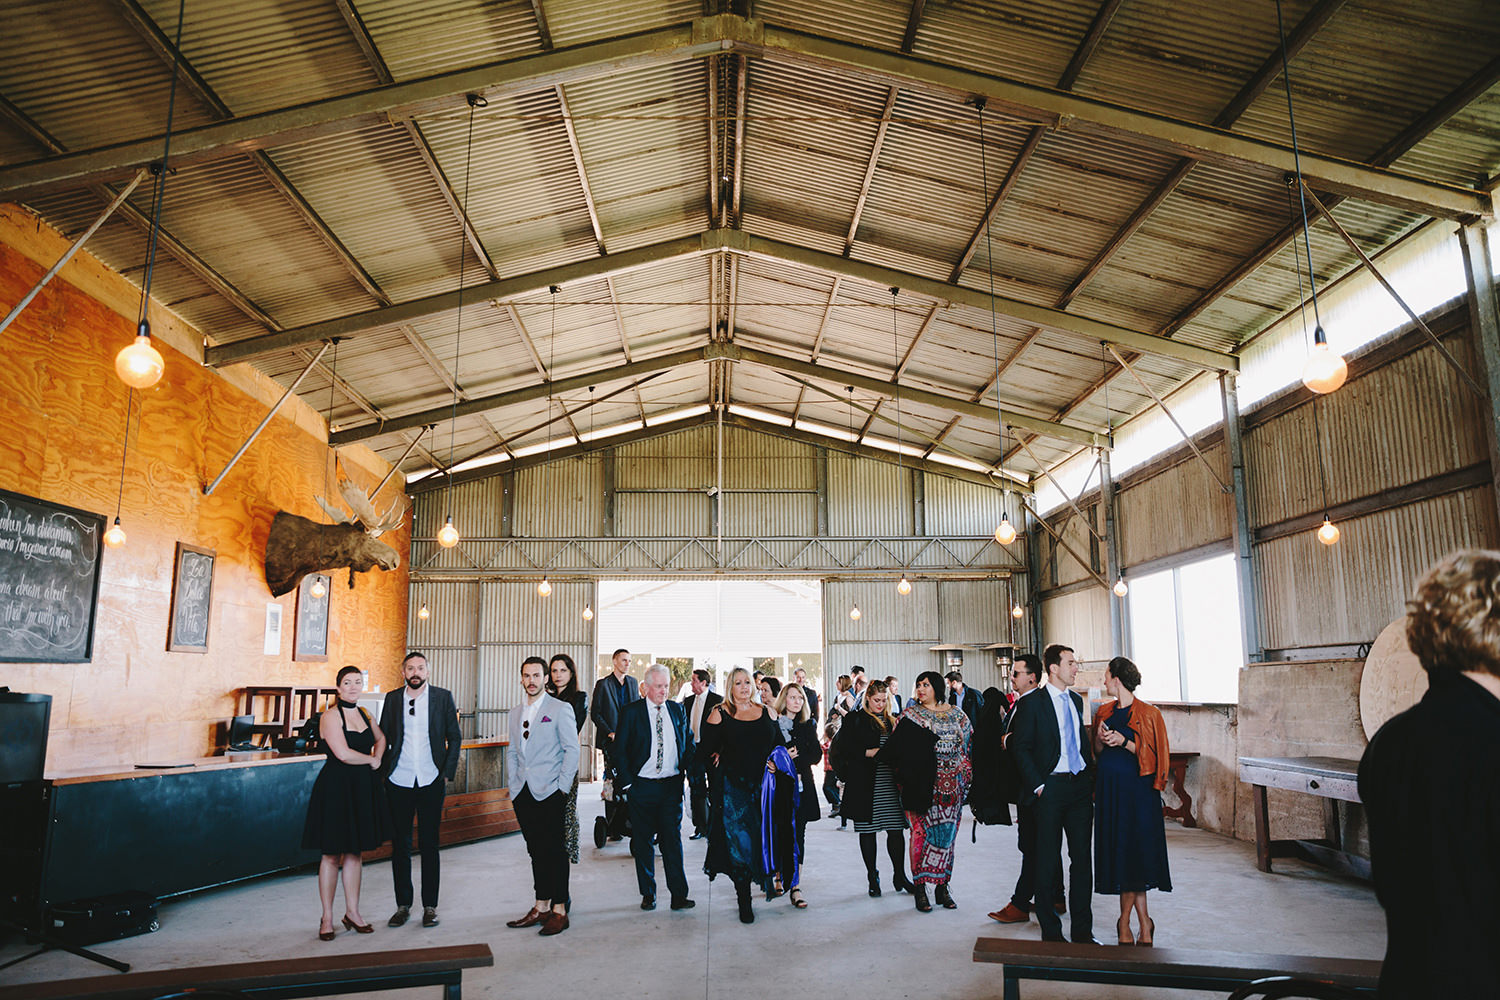 Melbourne_Winery_Wedding_Chris_Merrily075.JPG